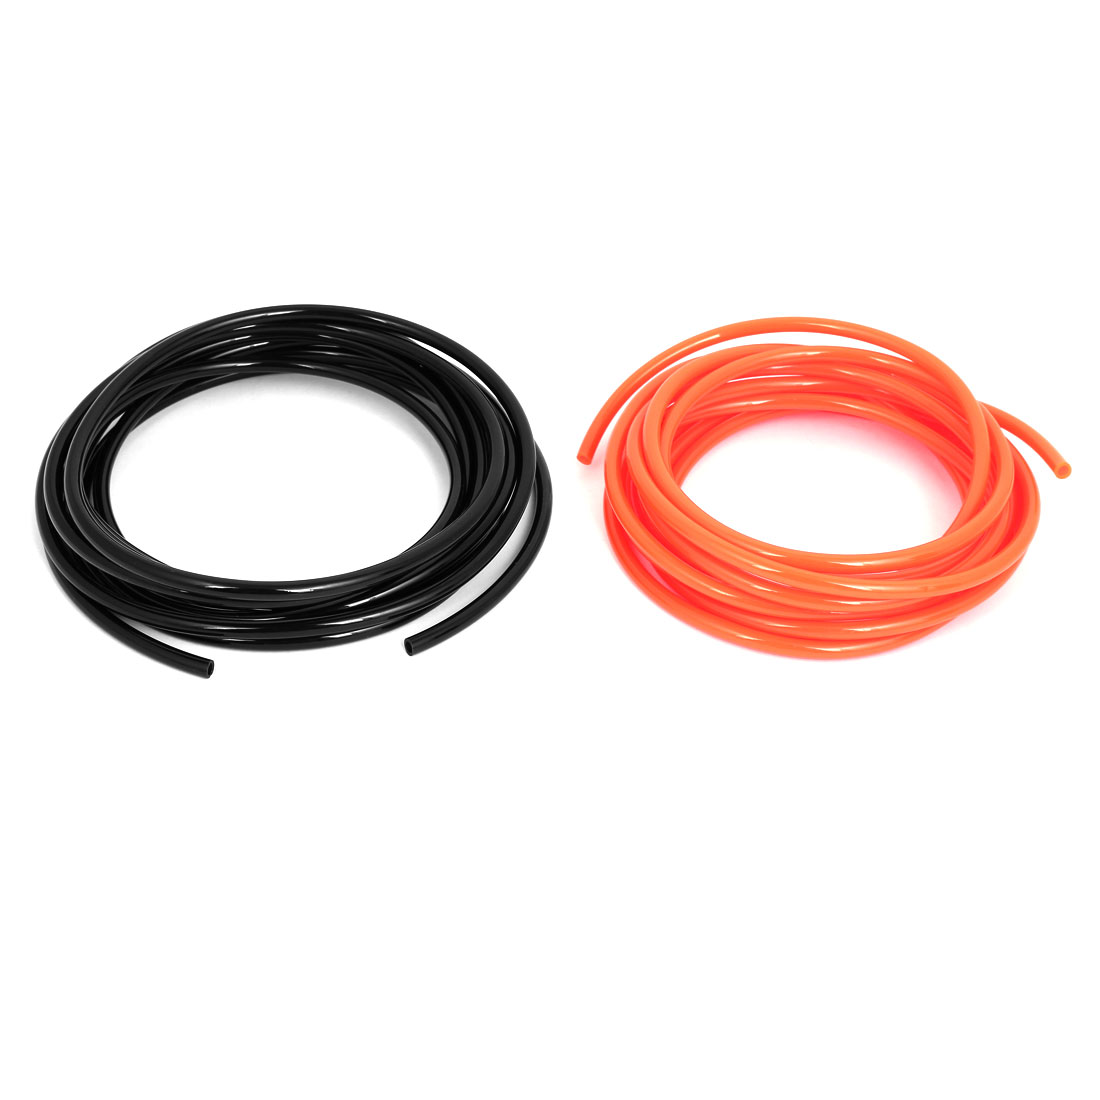 6mm x 4mm Dia Pneumatic Polyurethane PU Air Tube Tubing Pipe Hose Orange Black 2Pcs